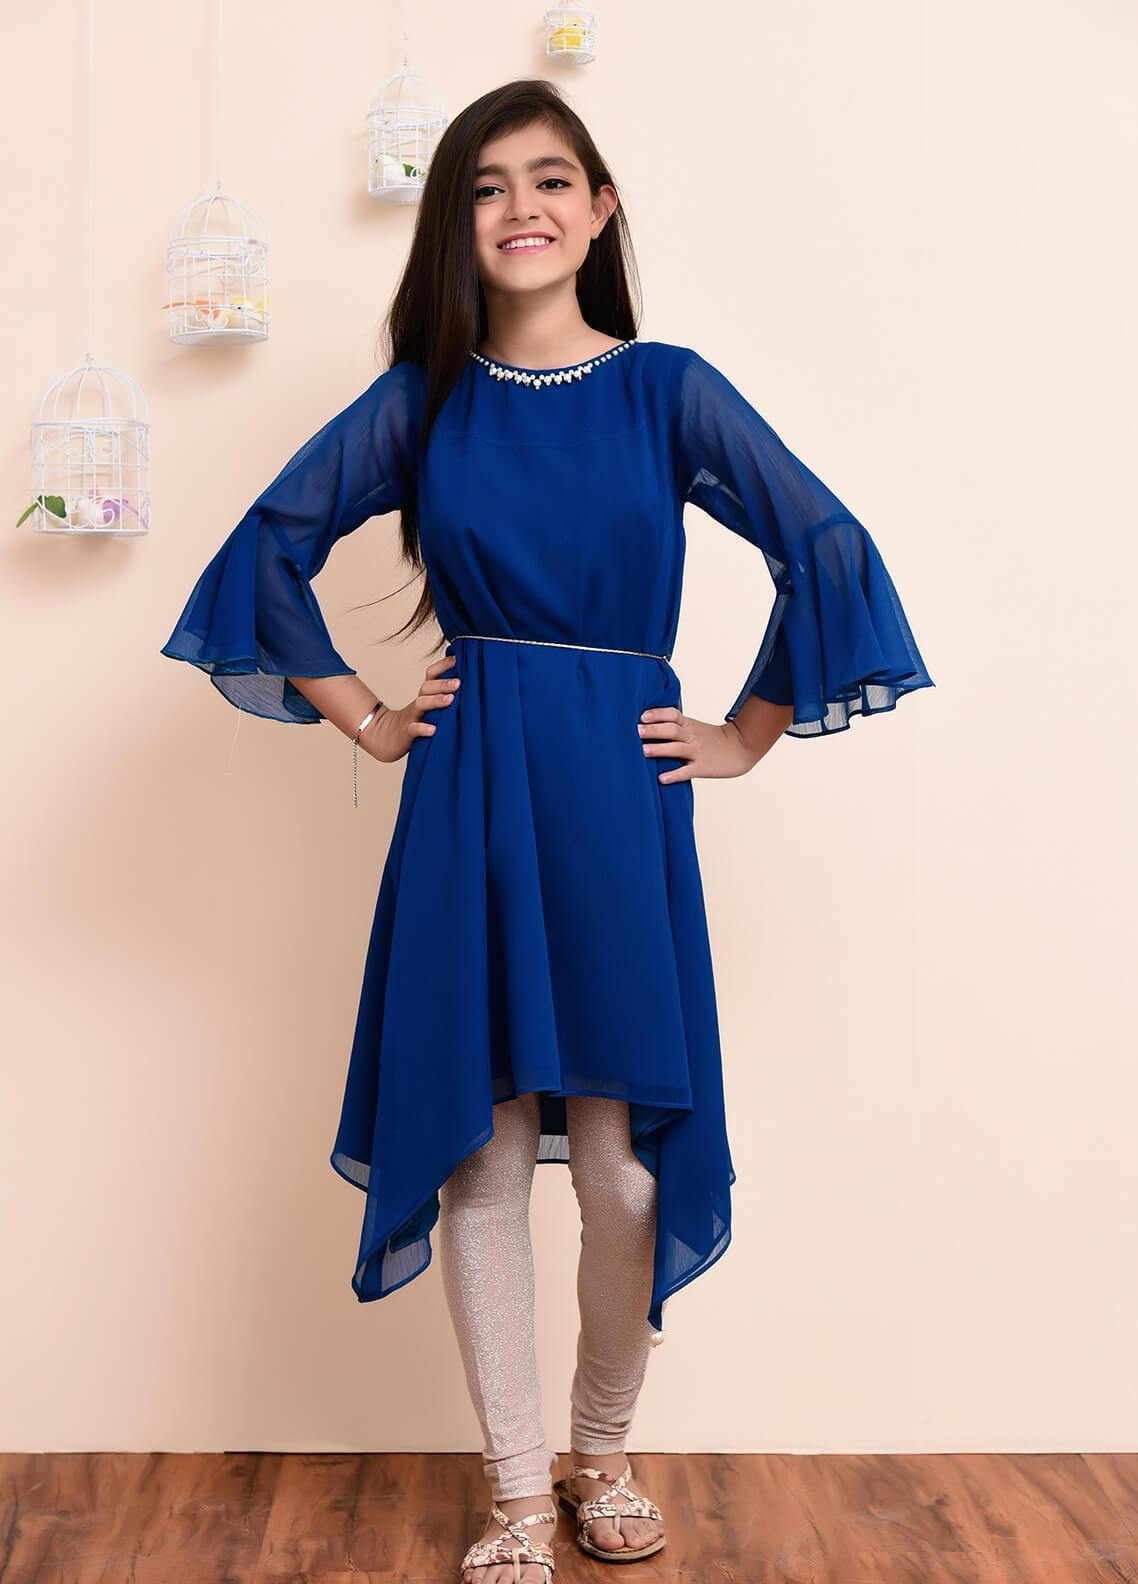 Ochre Chiffon Formal Girls Kurtis - OFW 163 Teal Blue